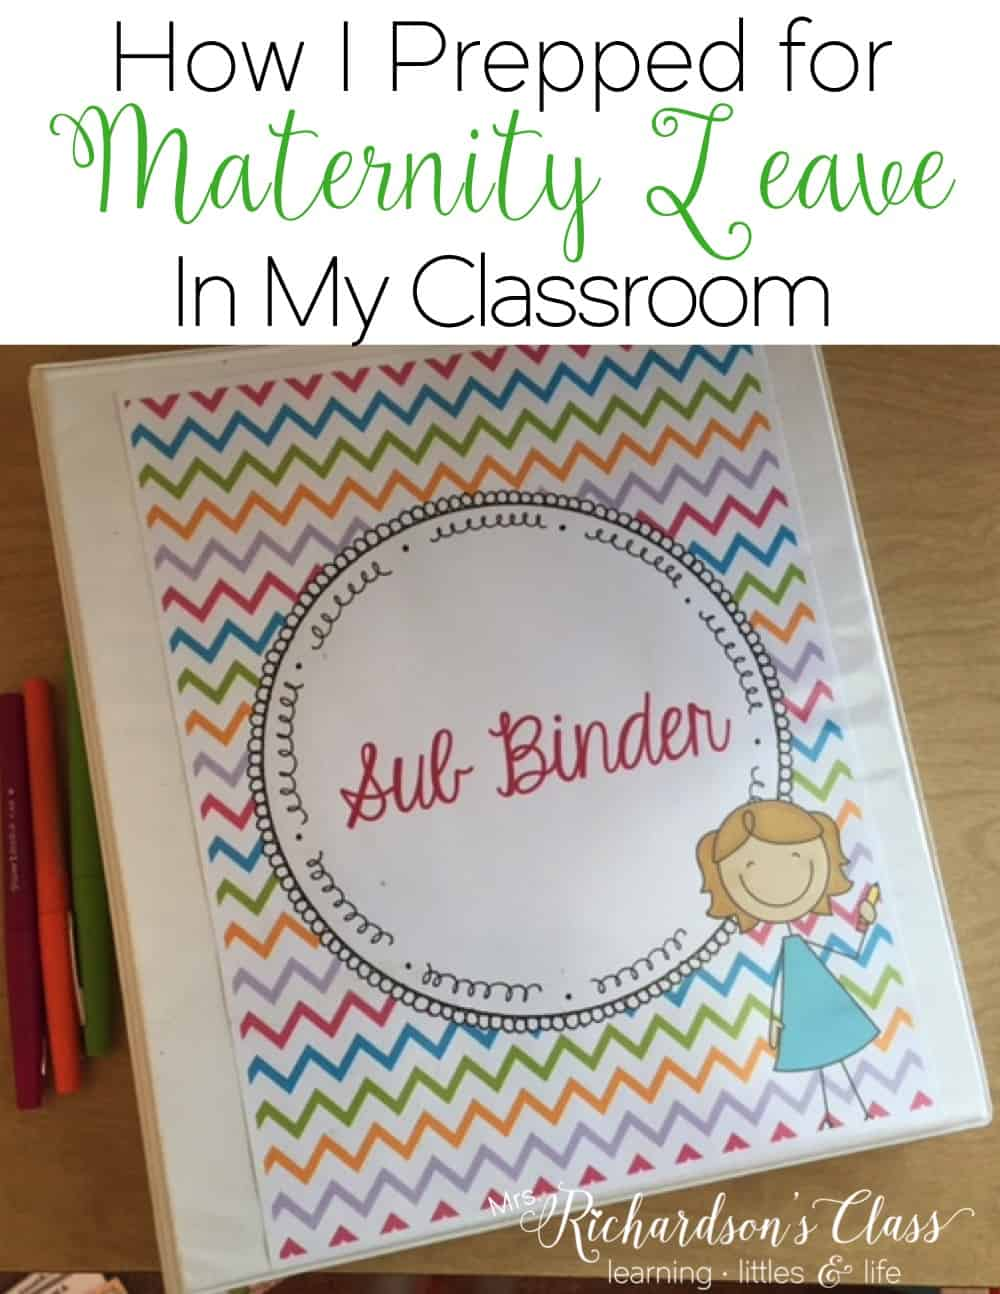 Get everything planned and organized for your substitute as you take maternity leave! See how this teacher prepared for her long term sub, and what was in the binder! #maternityleave #substituteteacher